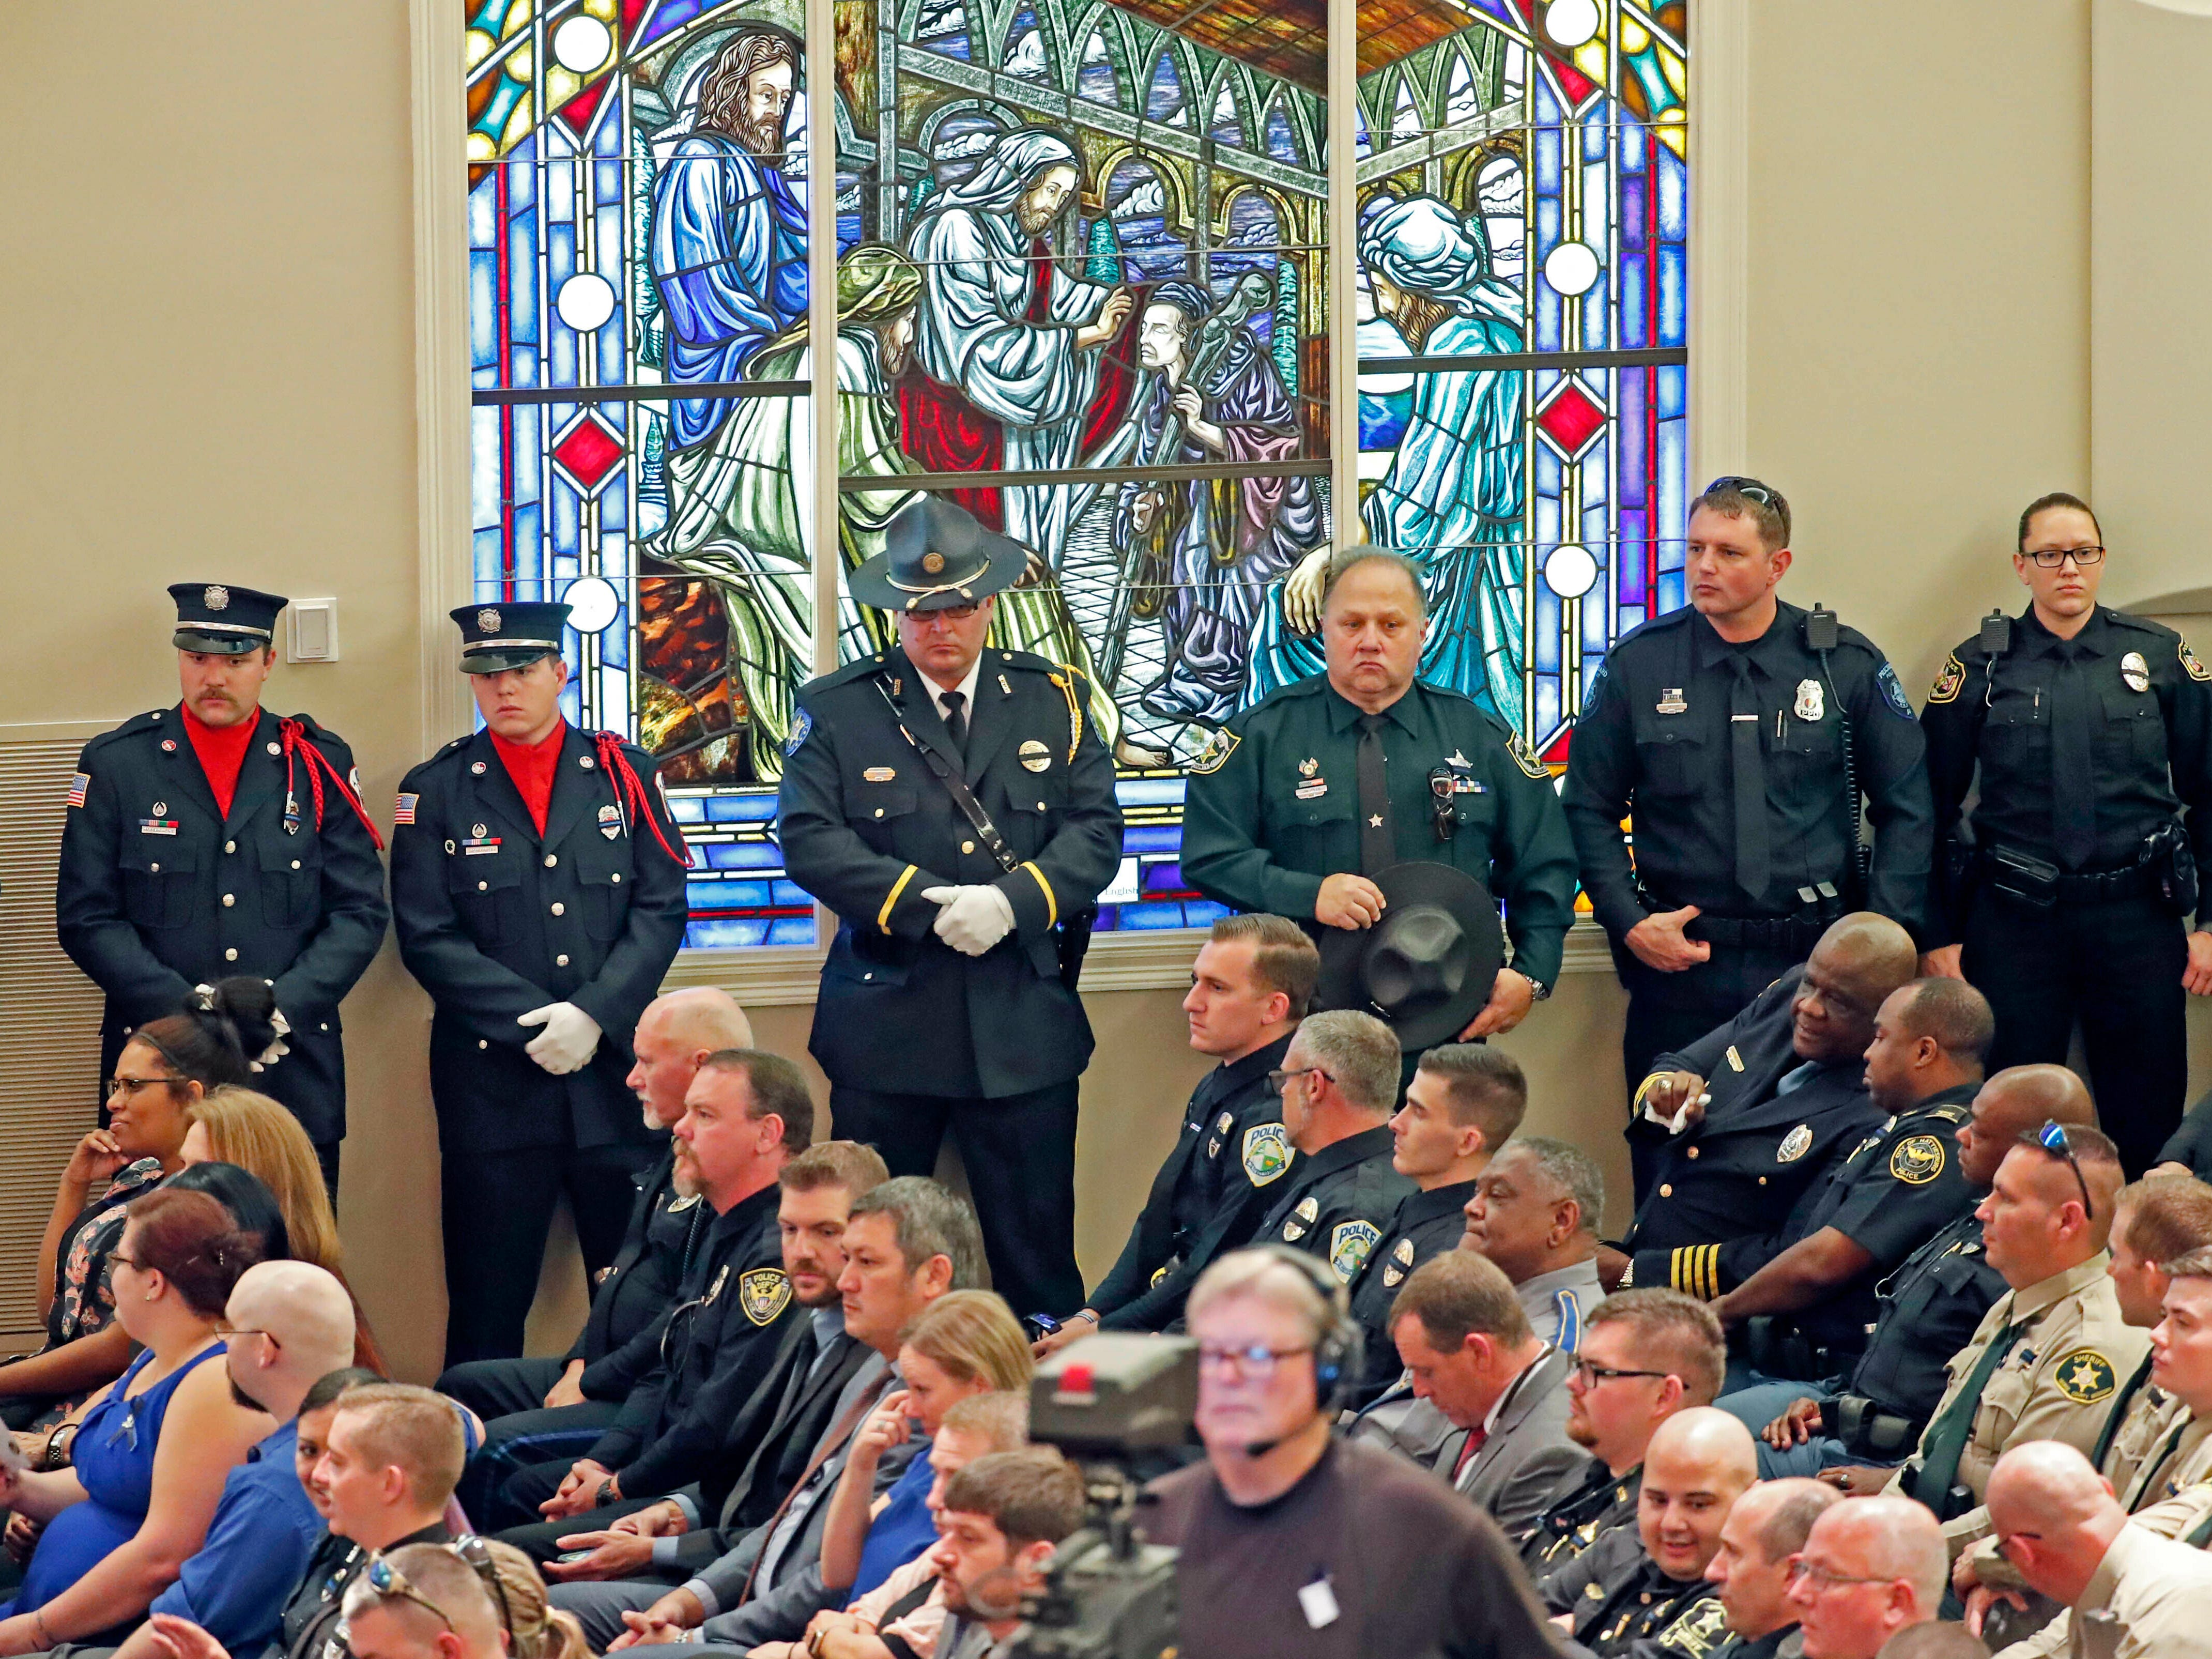 Visiting law enforcement officers, friends and community residents, filled the First Baptist Church of Biloxi, as they attended the funeral services of Biloxi, Miss., police officer Robert S. McKeithen, Monday, May 13, 2019, McKeithen was killed outside headquarters May 5.